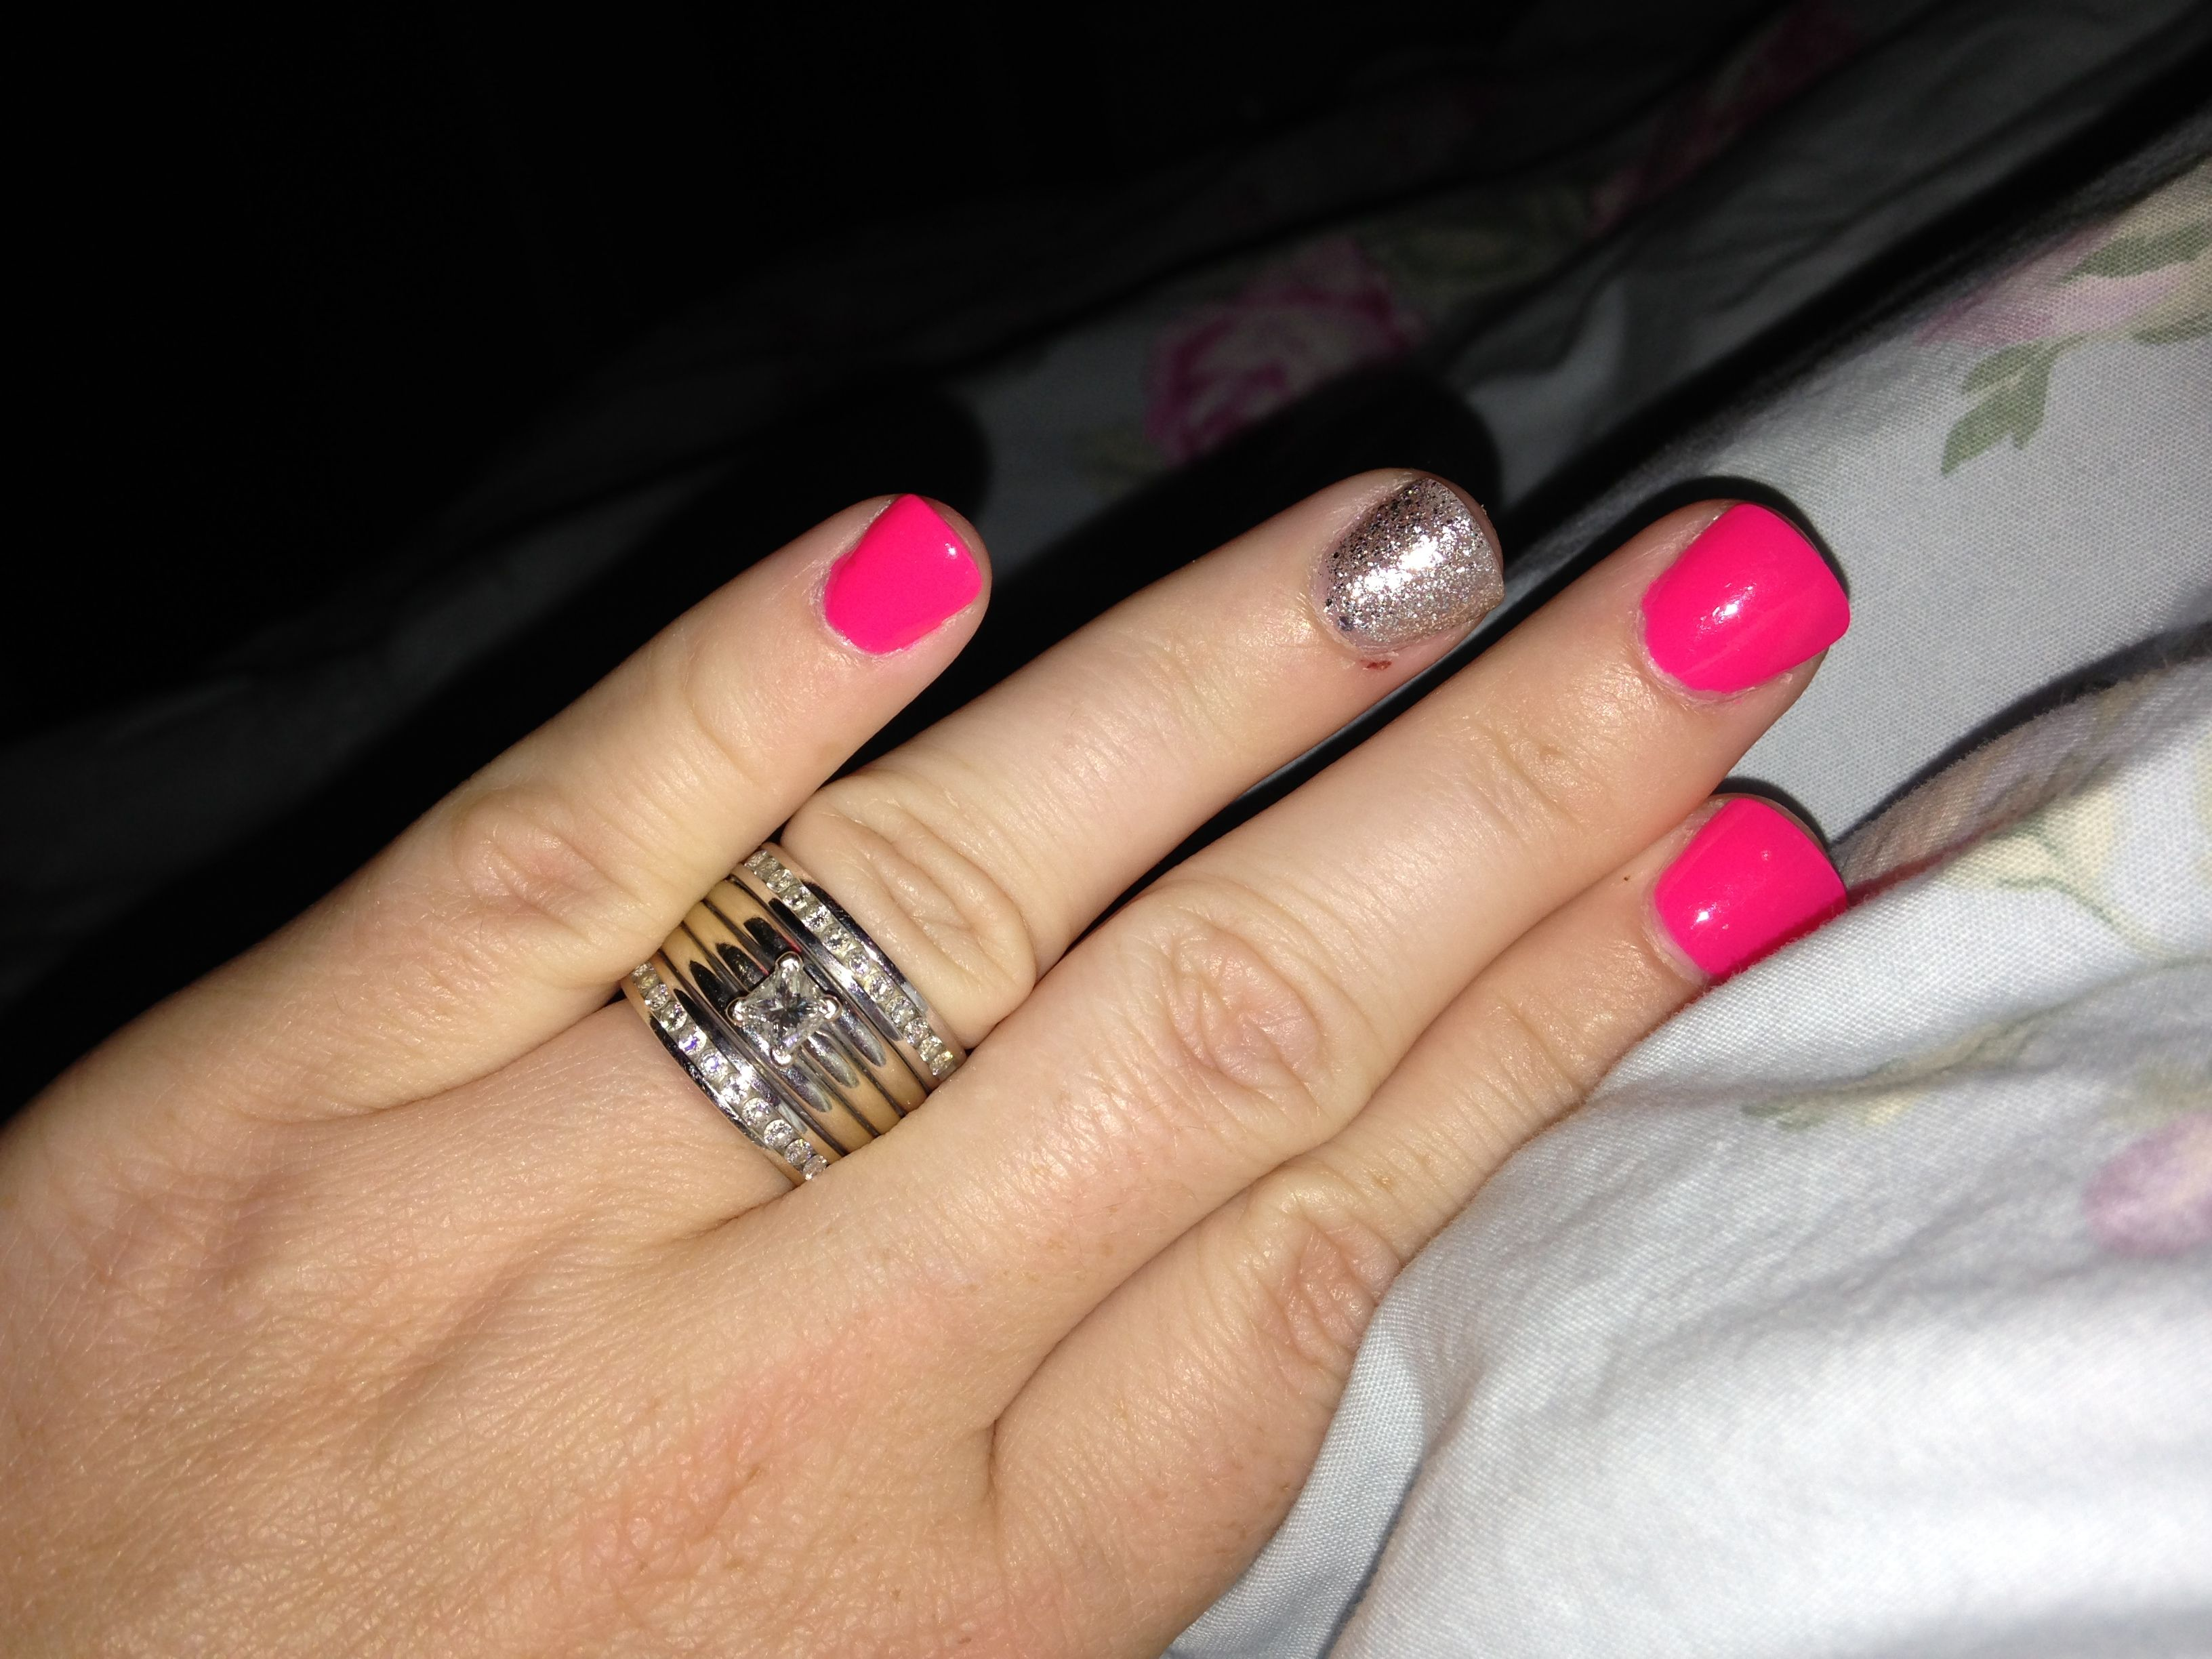 Super short acrylic nails. They can be fun, and not gross!! Just shorten them, and pick a super fun color combination!